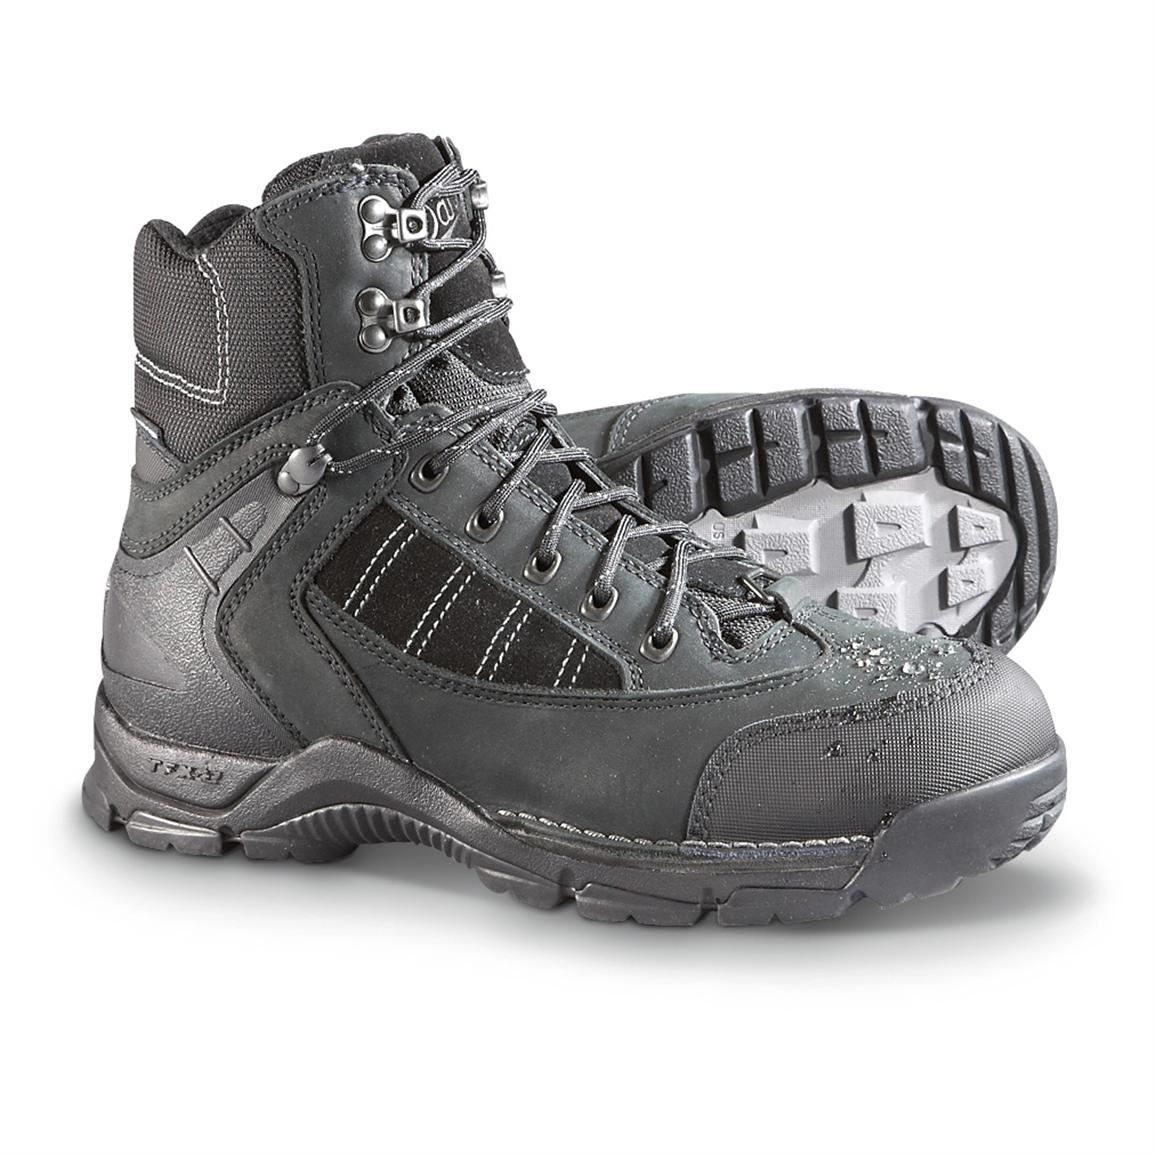 Men's Danner® Roughhouse Mountain 400 gram Thinsulate™ Ultra Insulation GORE-TEX® Boots, Black